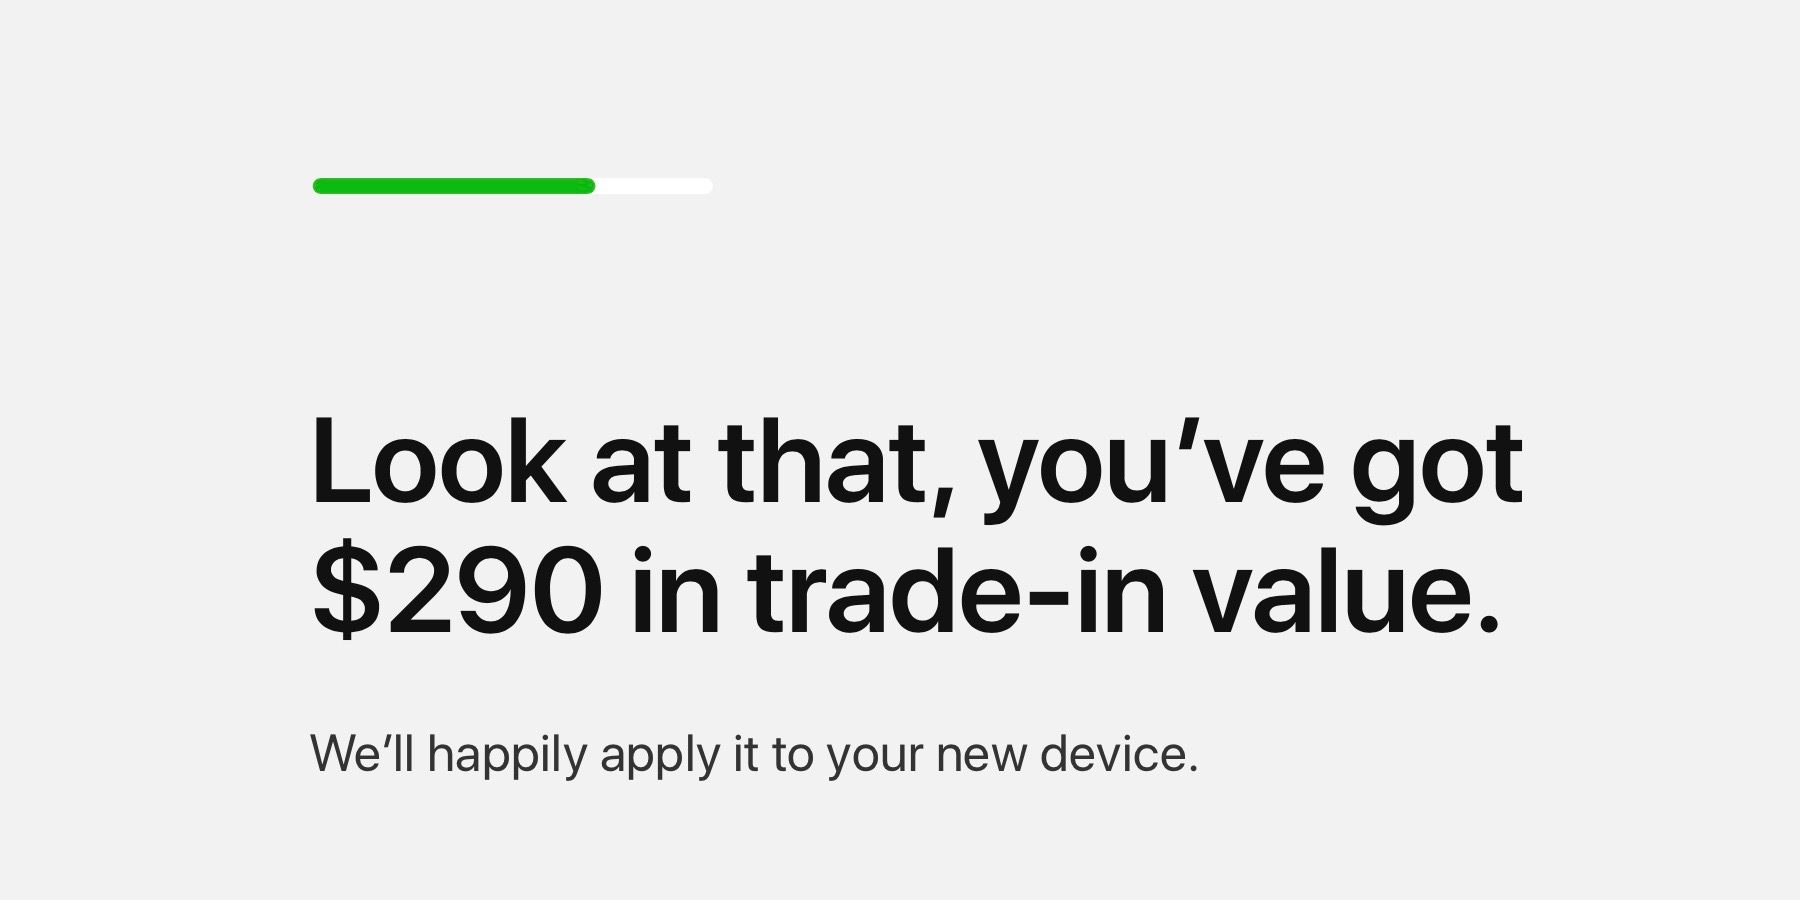 apple pushes giveback program with trade ins now worth instant credit toward new iphone ipad apple watch mac